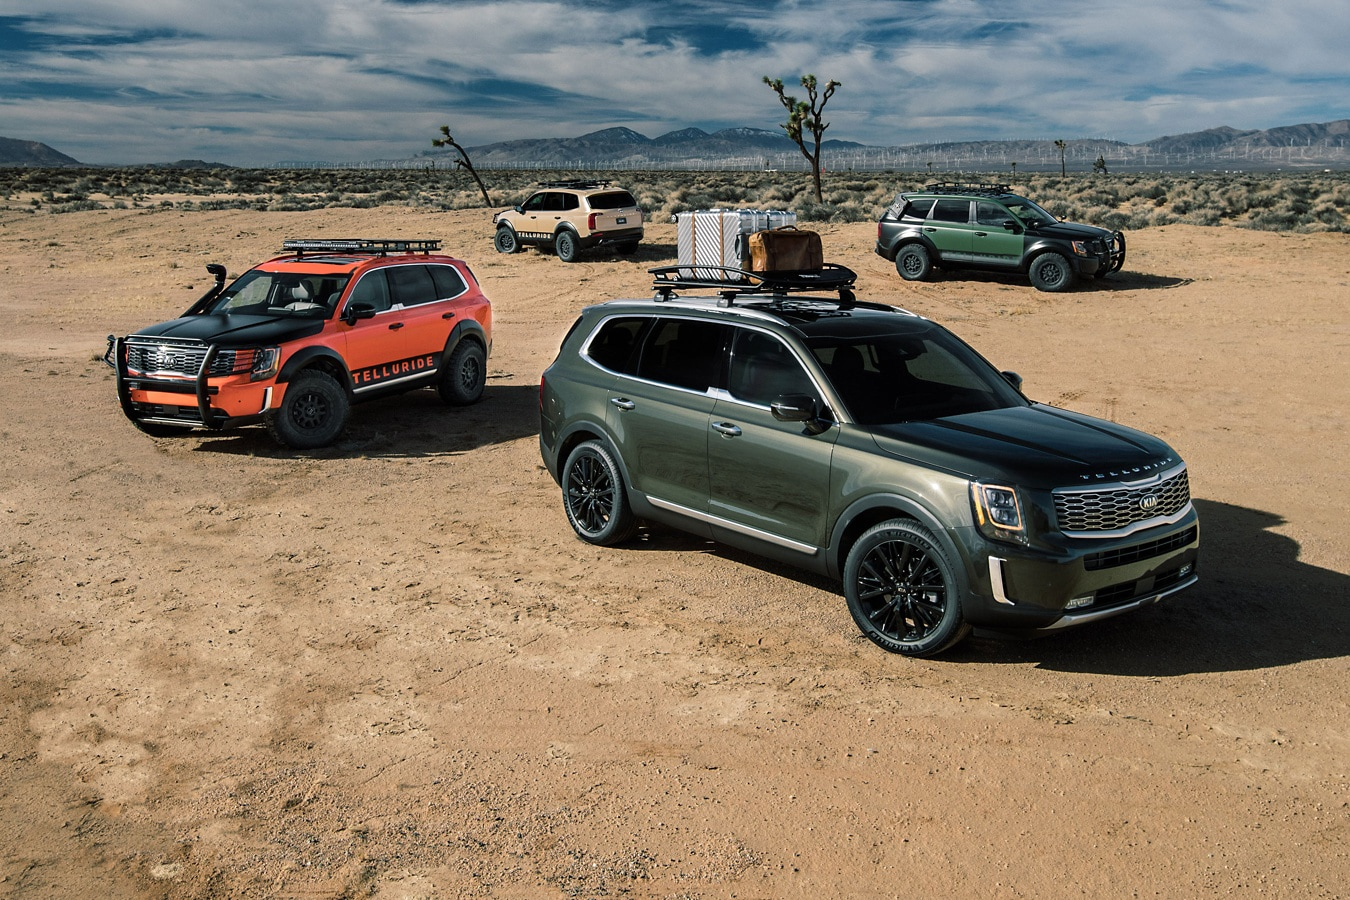 Shop 2020 KIA Telluride in Matteson, IL